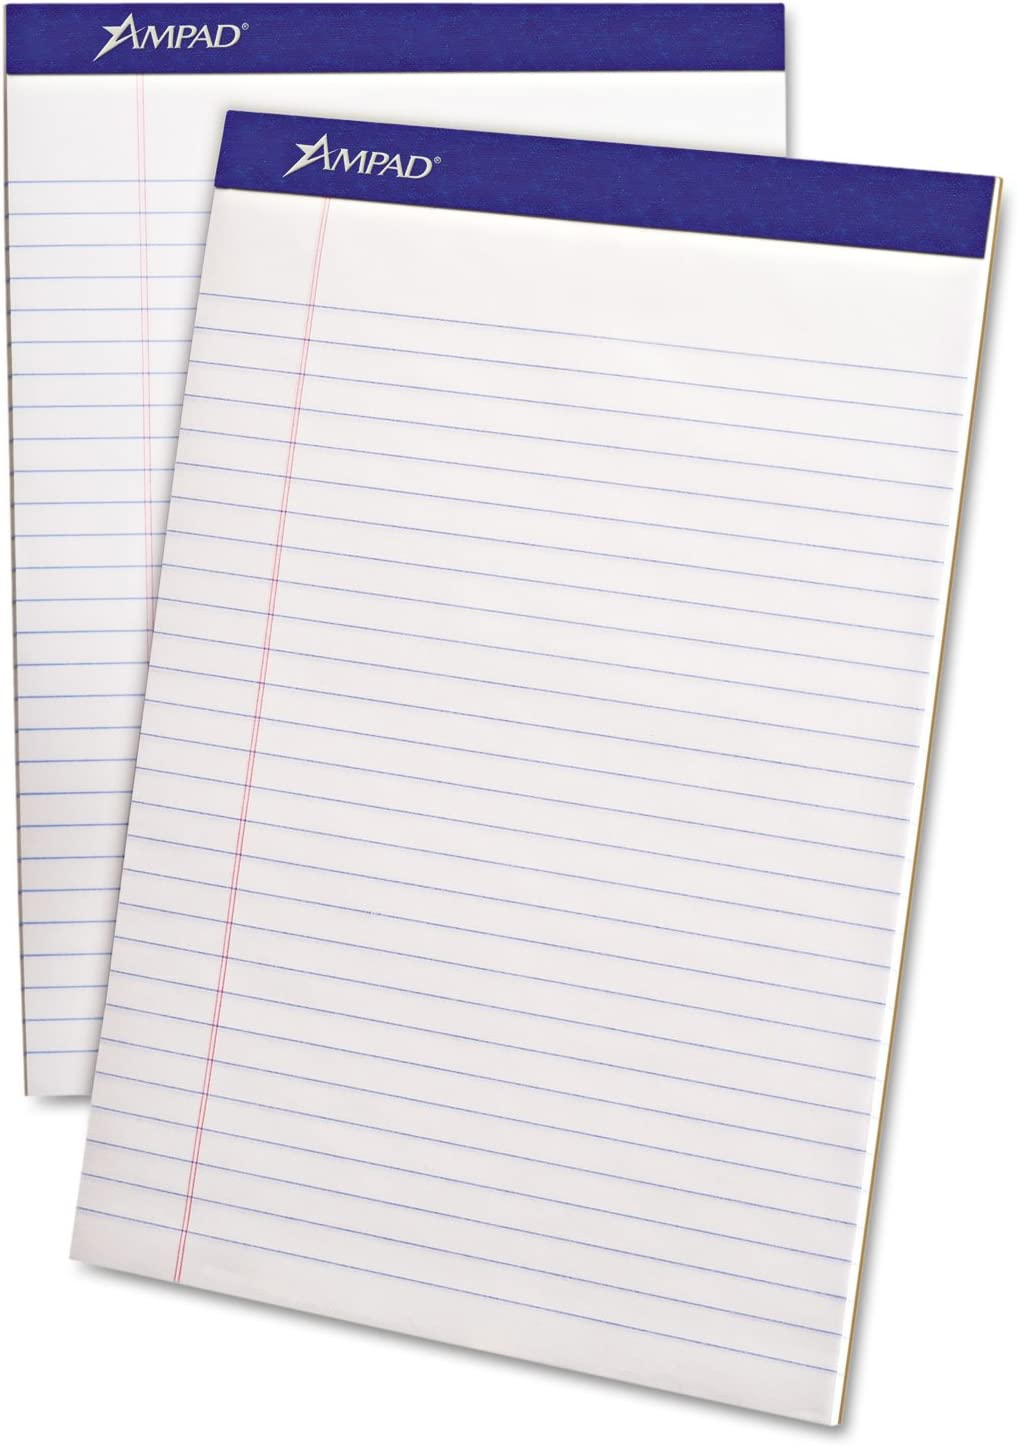 Ampad 20320 Perforated Pad Legal We OFFer at cheap prices Rule 2-Inc 8-1 Sheets 50 OFFicial store